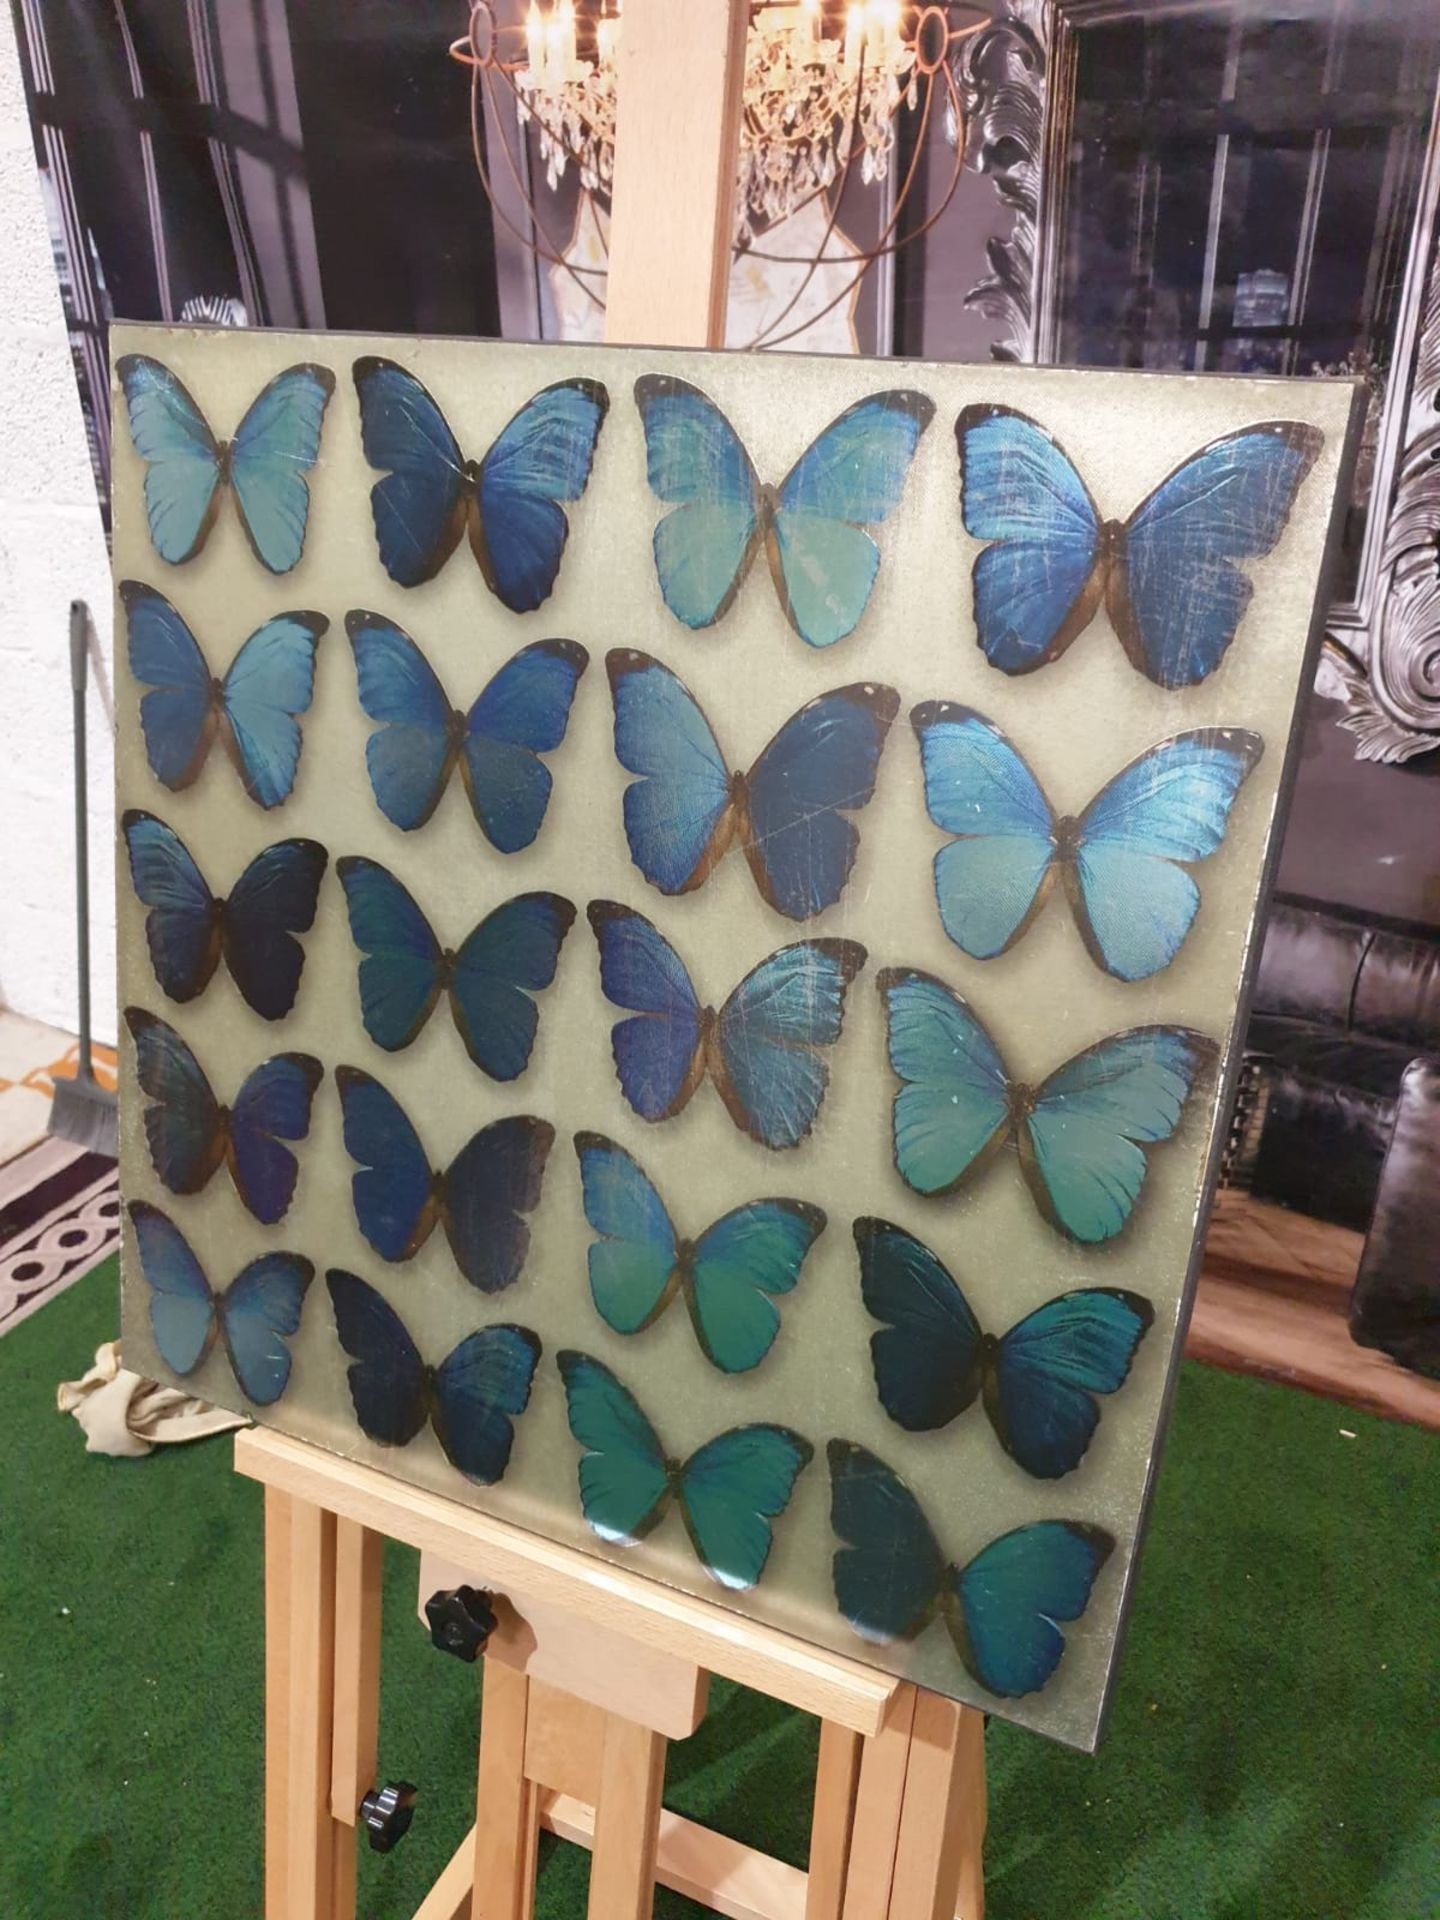 Panel of 20 teal Blue butterflies 57 x 57cm - Image 2 of 2